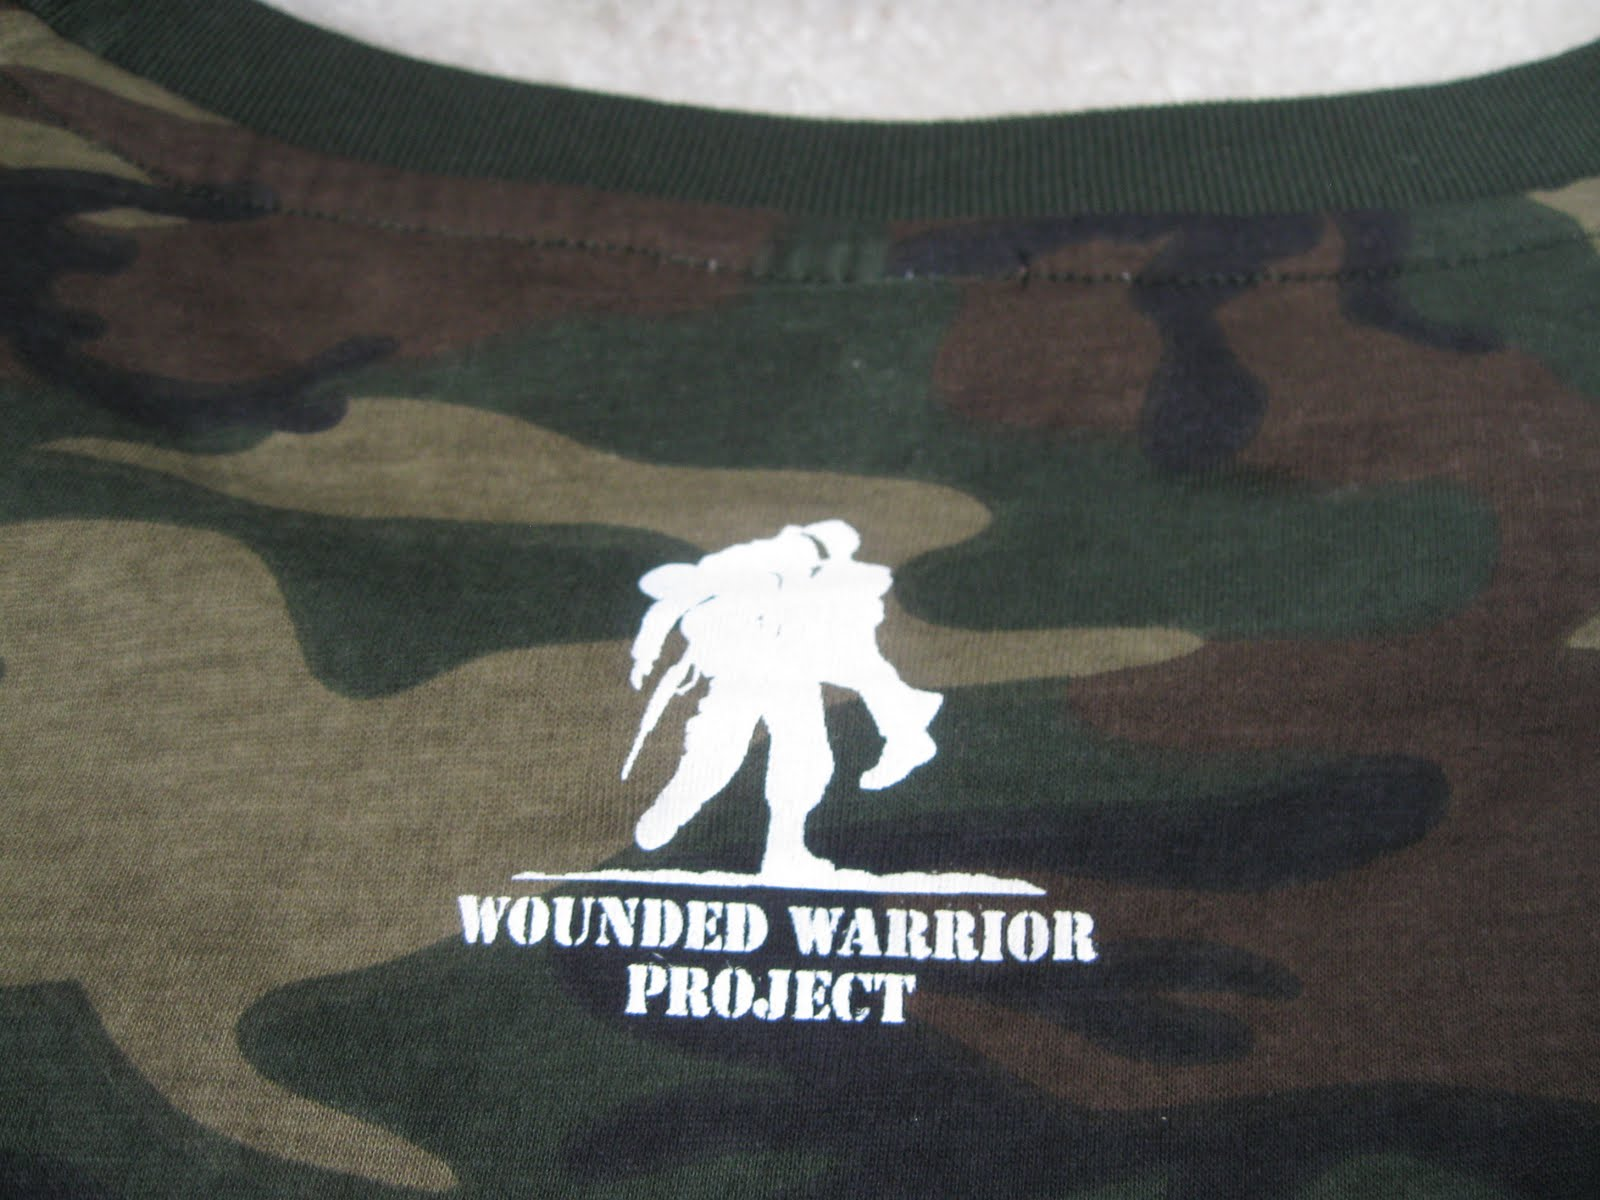 CBS News investigates Wounded Warrior Project